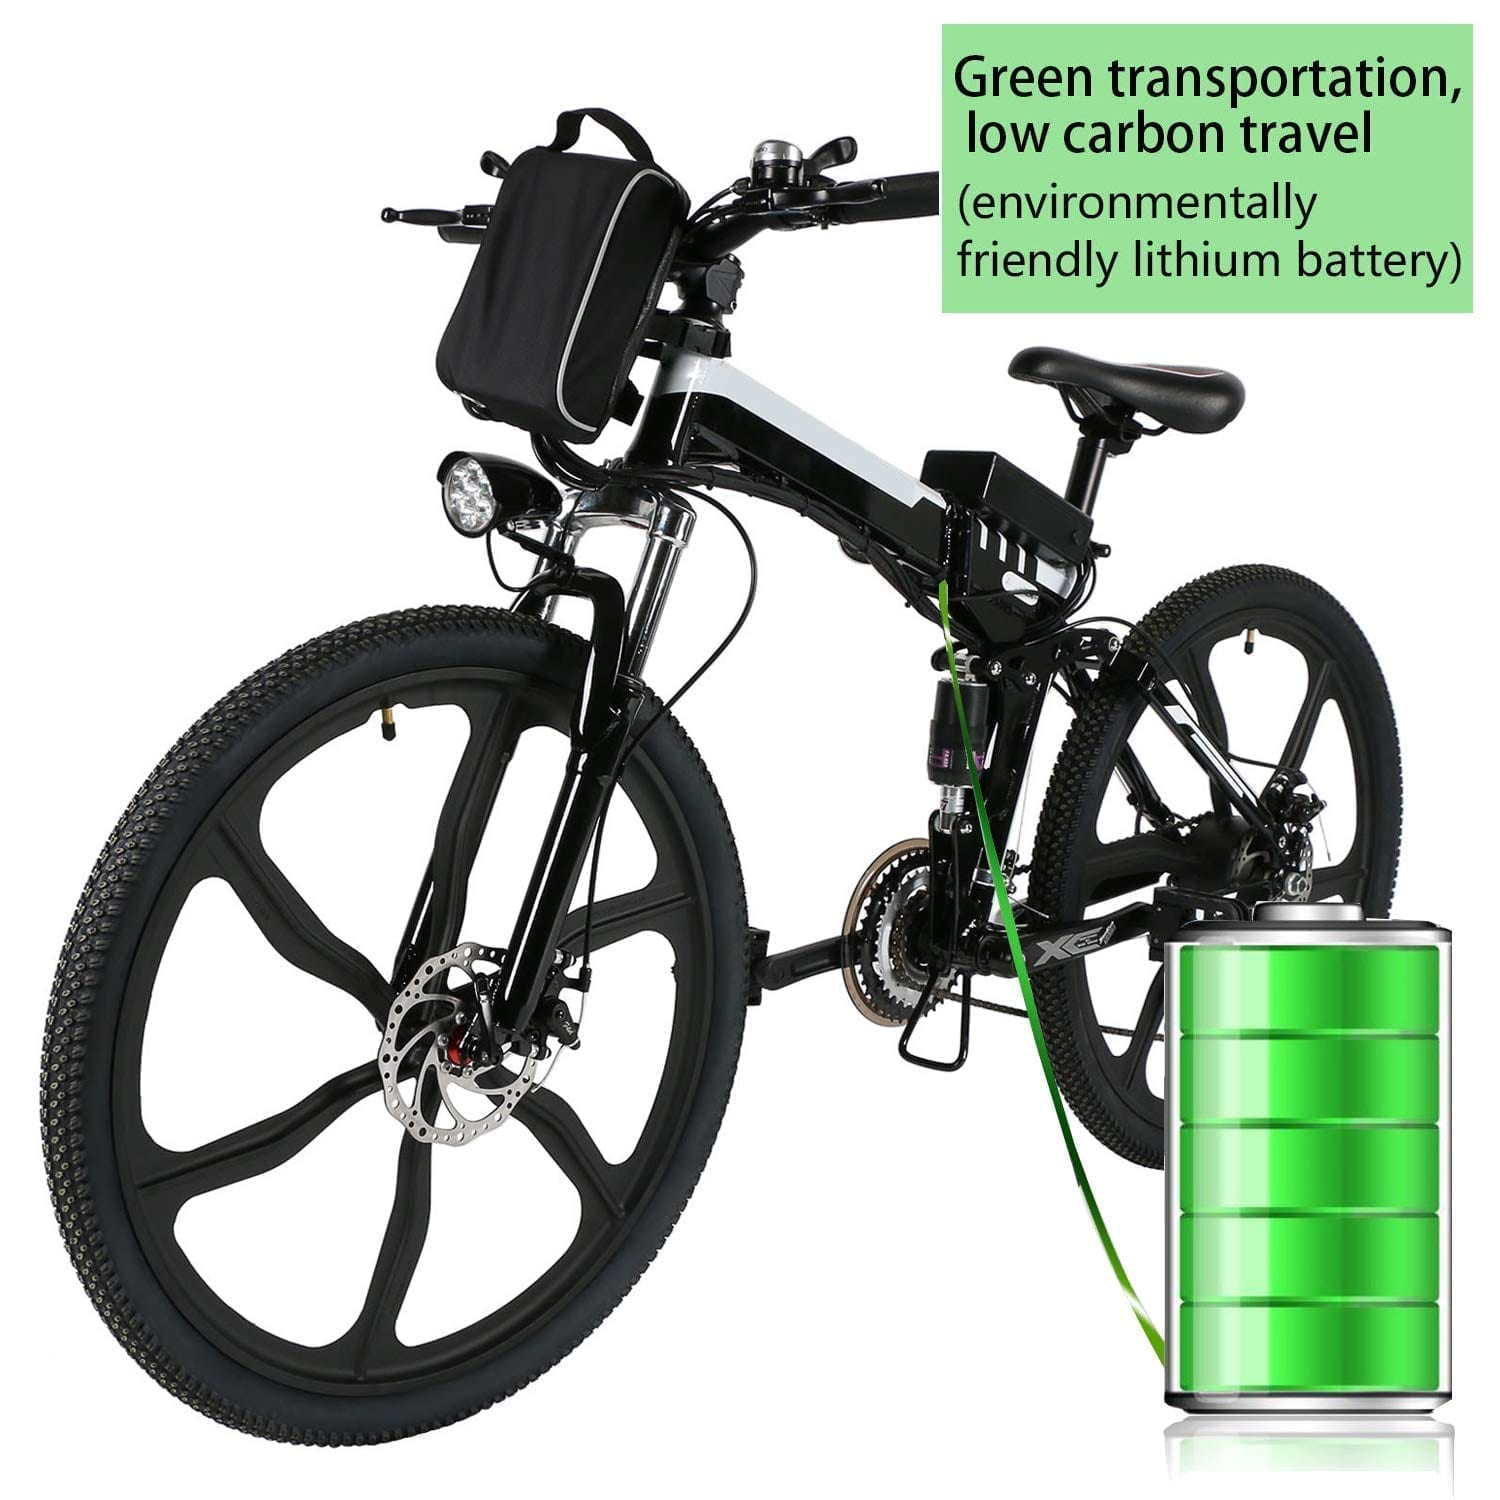 Kemanner 26-inch Electric Mountain-Bike for Adults [21 Speed]